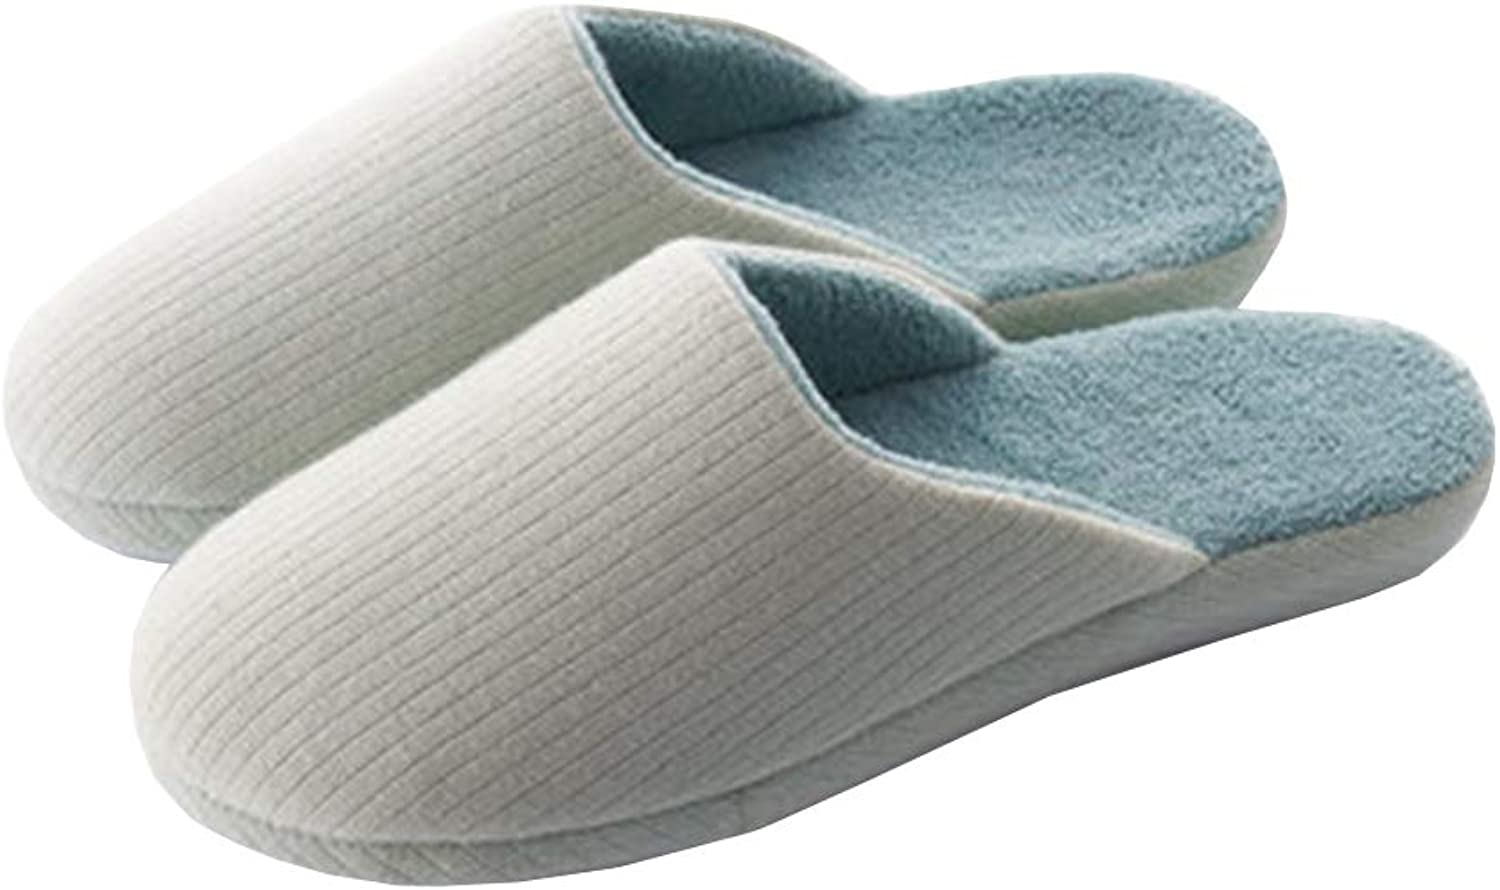 Women's and Men's Unisex Slippers Striped Knitting Warm Coral Fleece Anti Skid Indoor Outdoor Slip-On House shoes